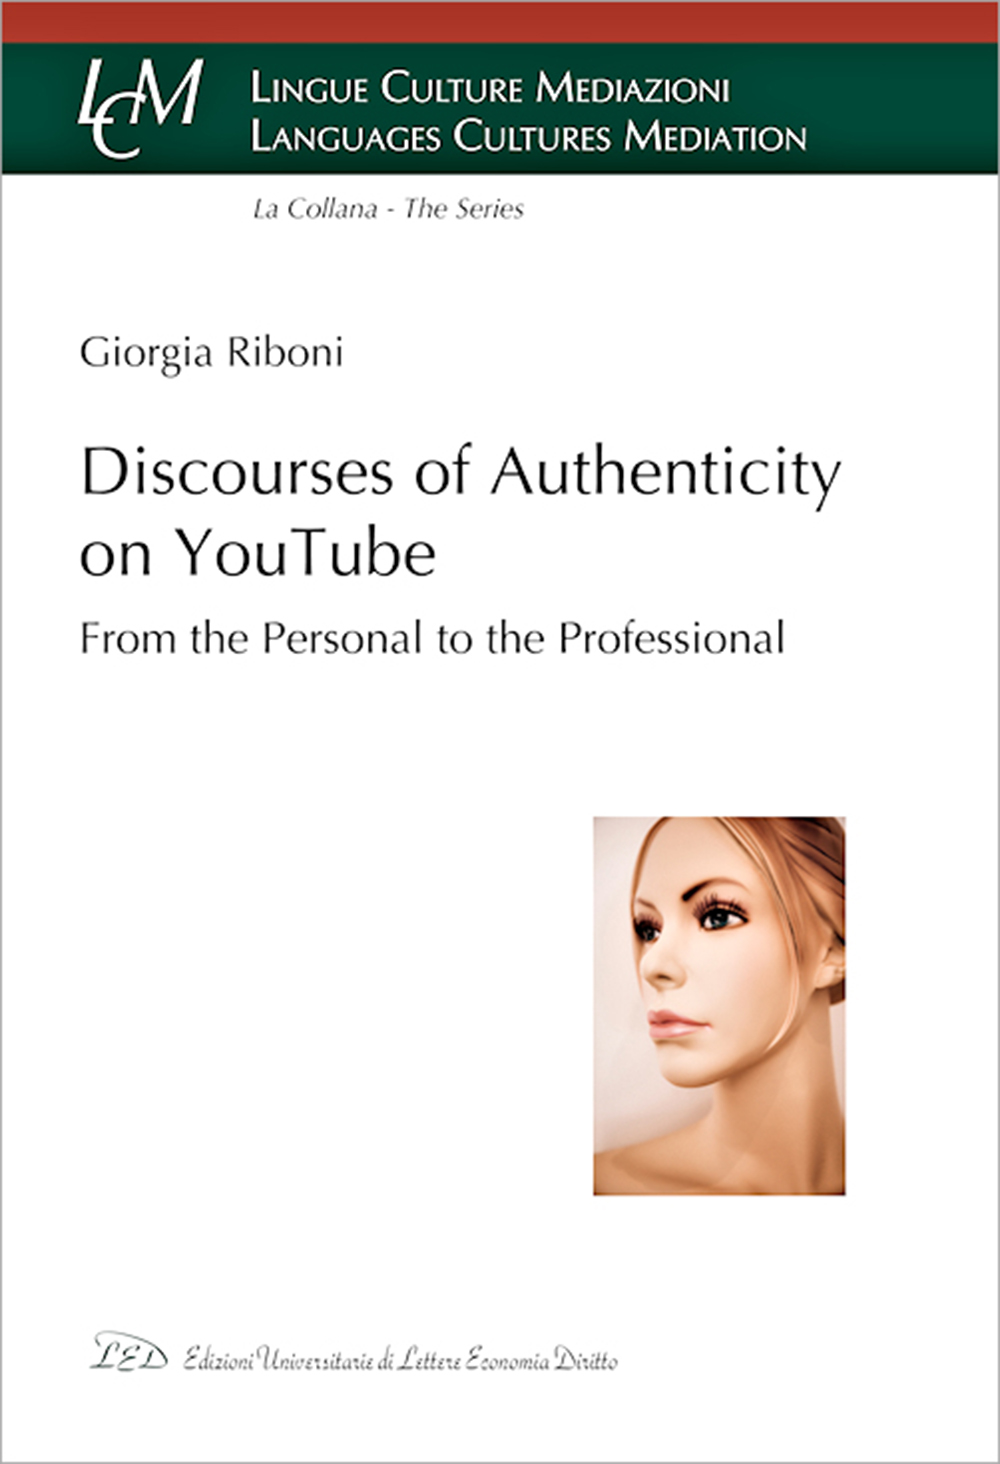 DISCOURSES OF AUTHENTICITY ON YOUTUBE. From the Personal to the Professional